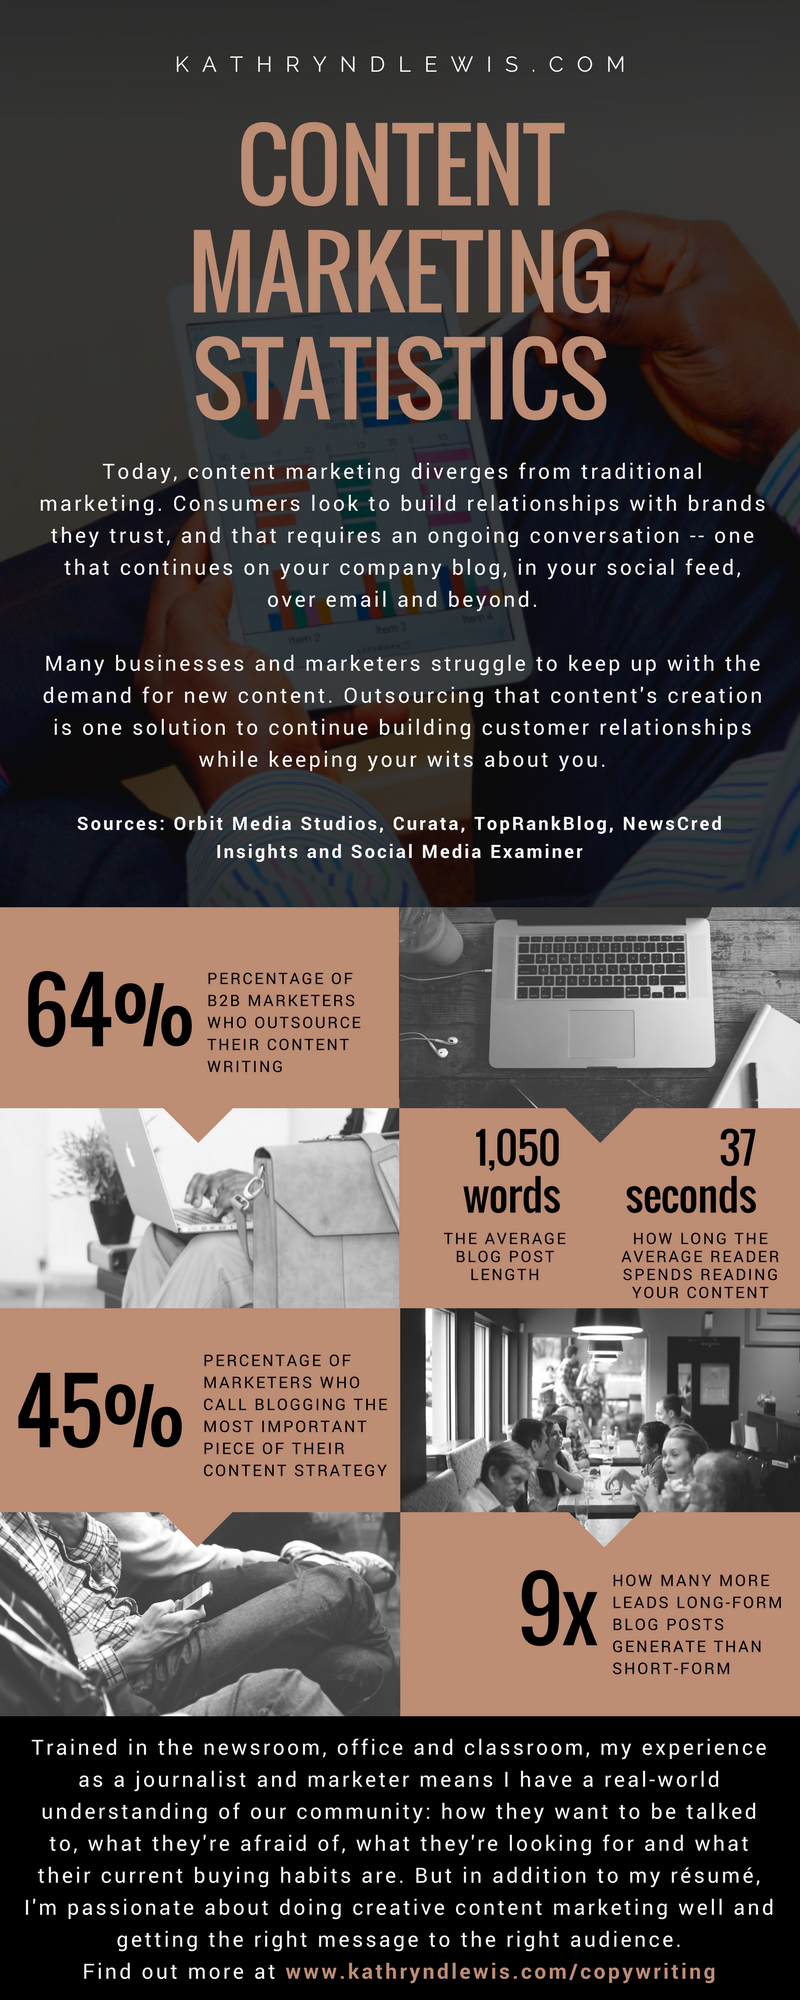 Content marketing statistics from kathryndlewis.com